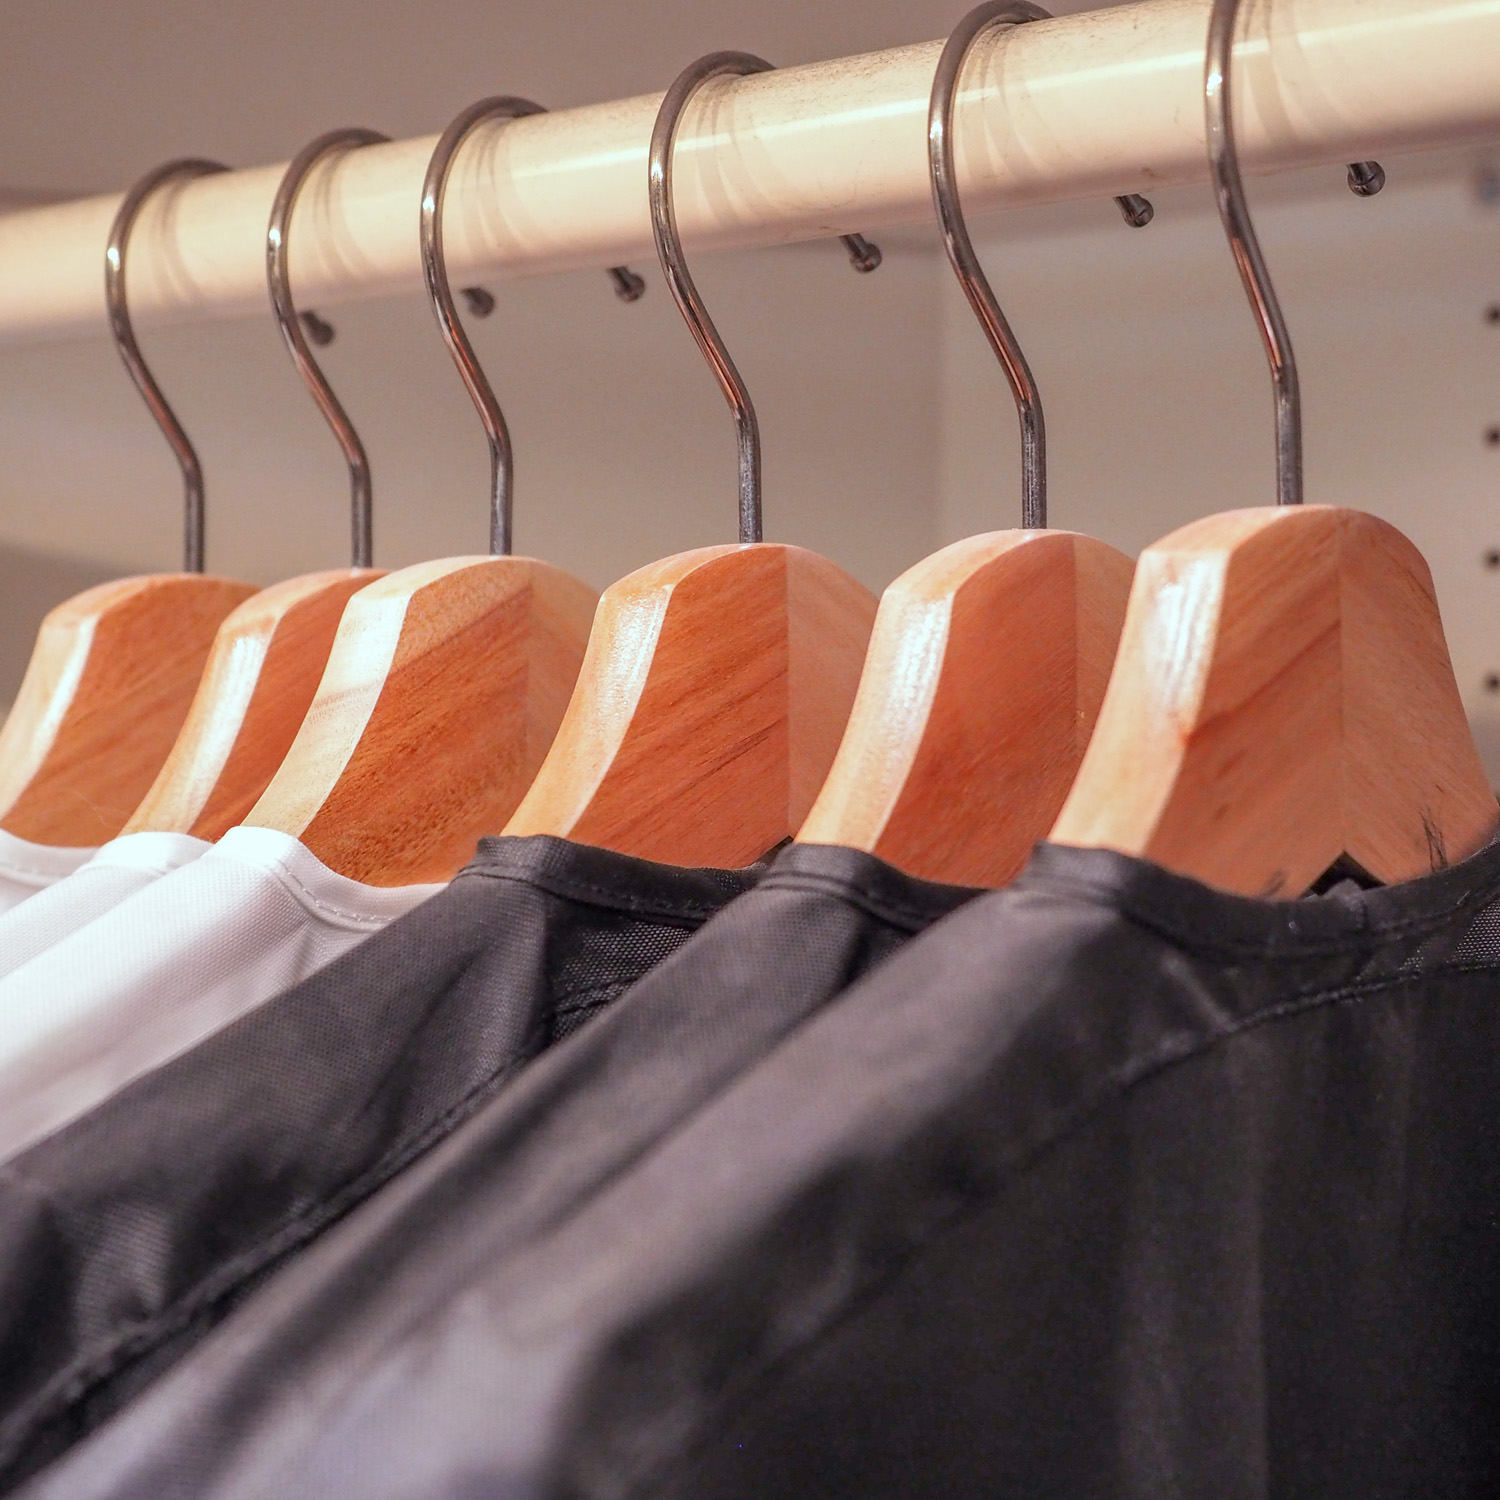 Close-up view of clothes on wooden hangers in closet